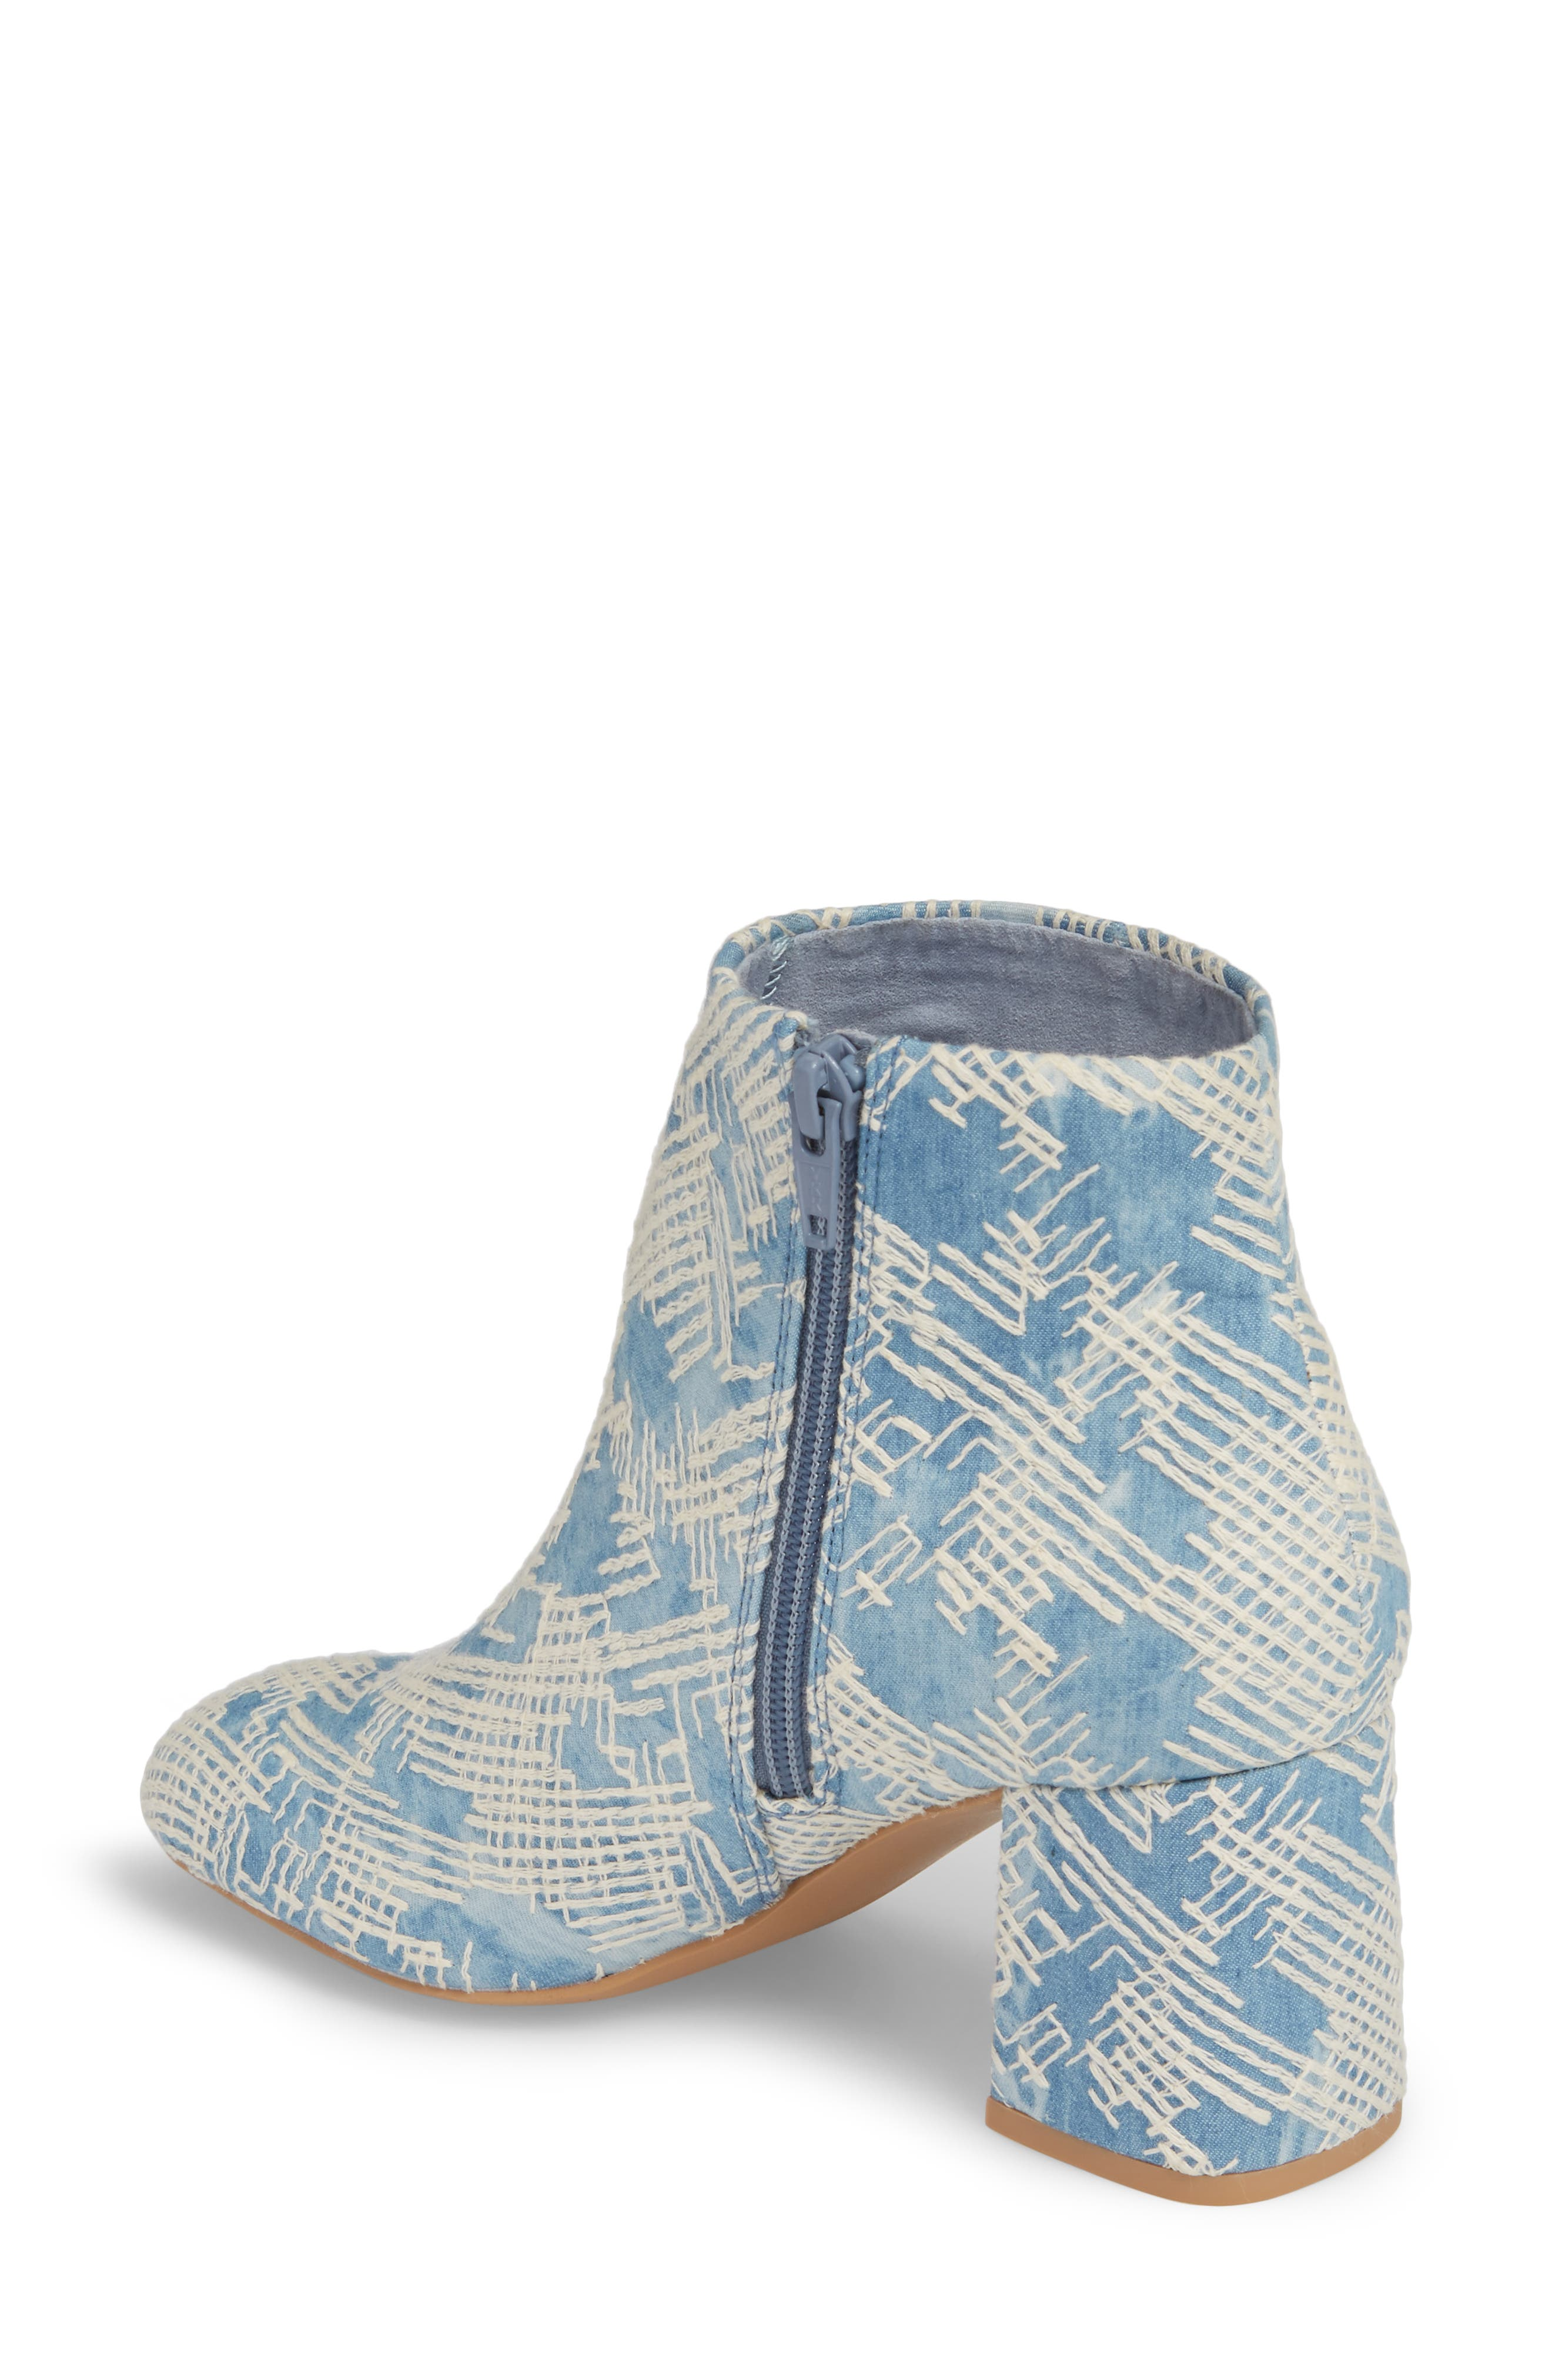 Audition Bootie,                             Alternate thumbnail 2, color,                             Emrboidered Denim